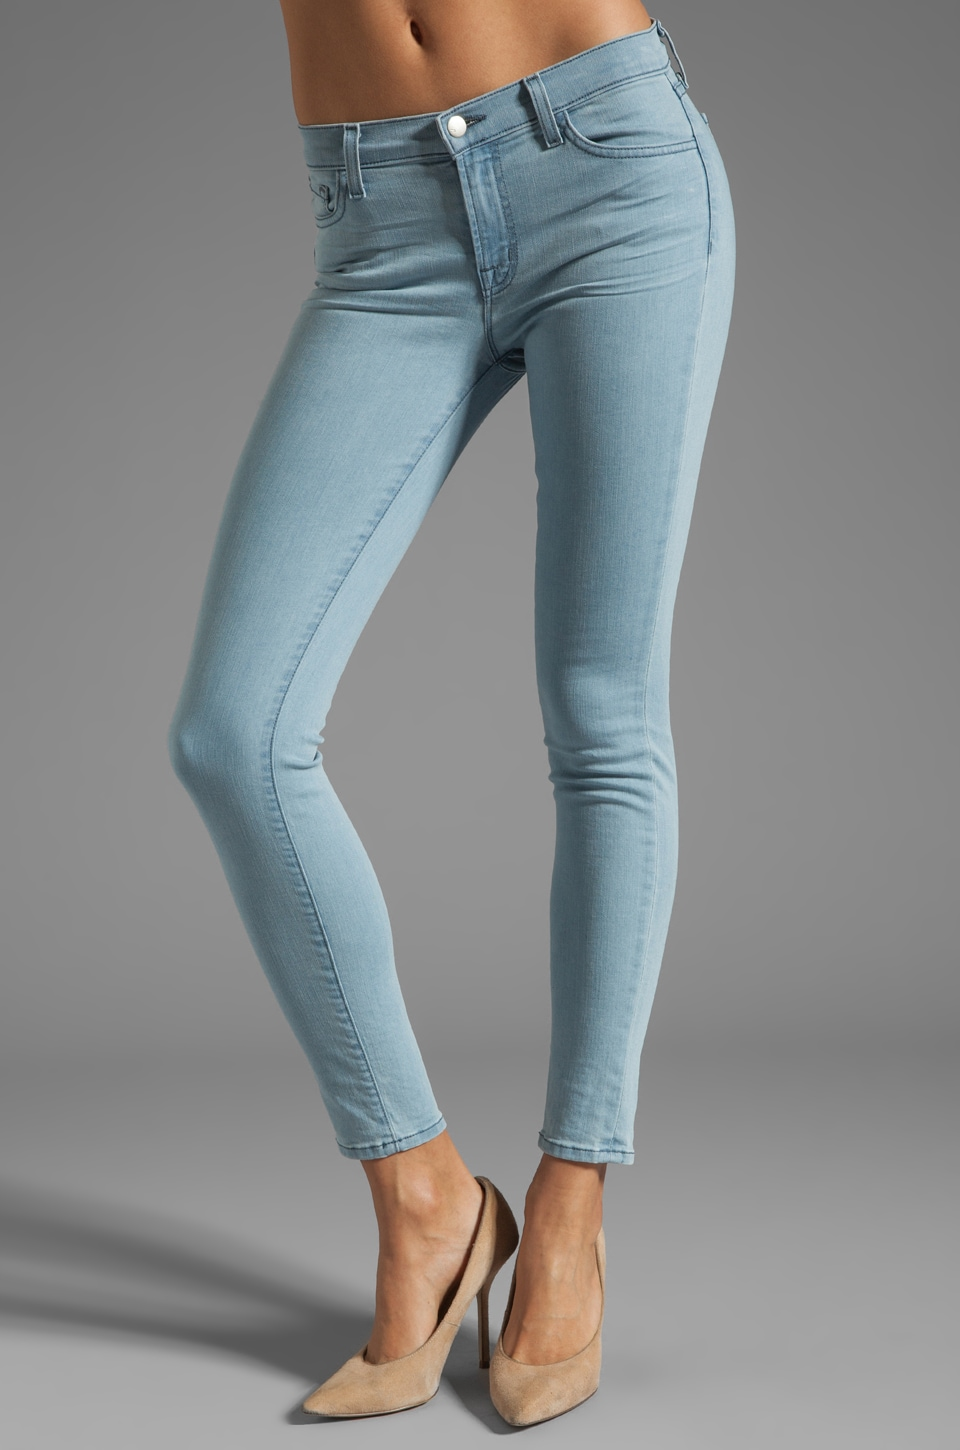 J Brand Mid Rise Skinny in Beautiful Blue